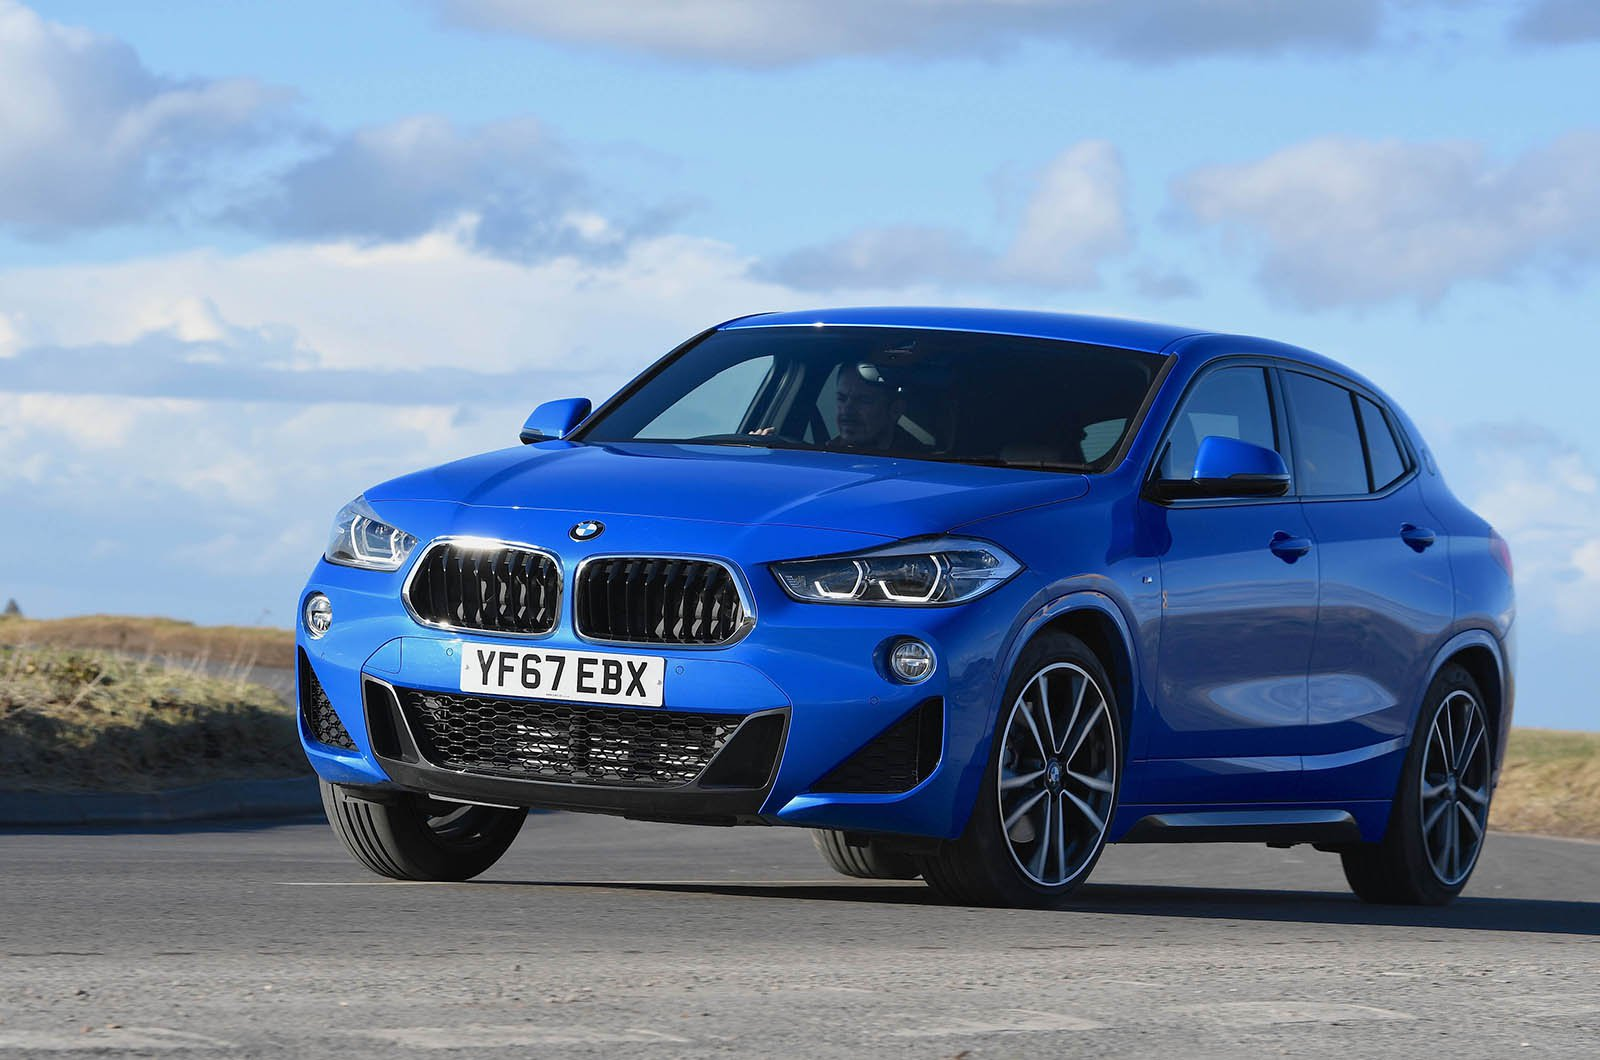 BMW X2 front - 67 plate